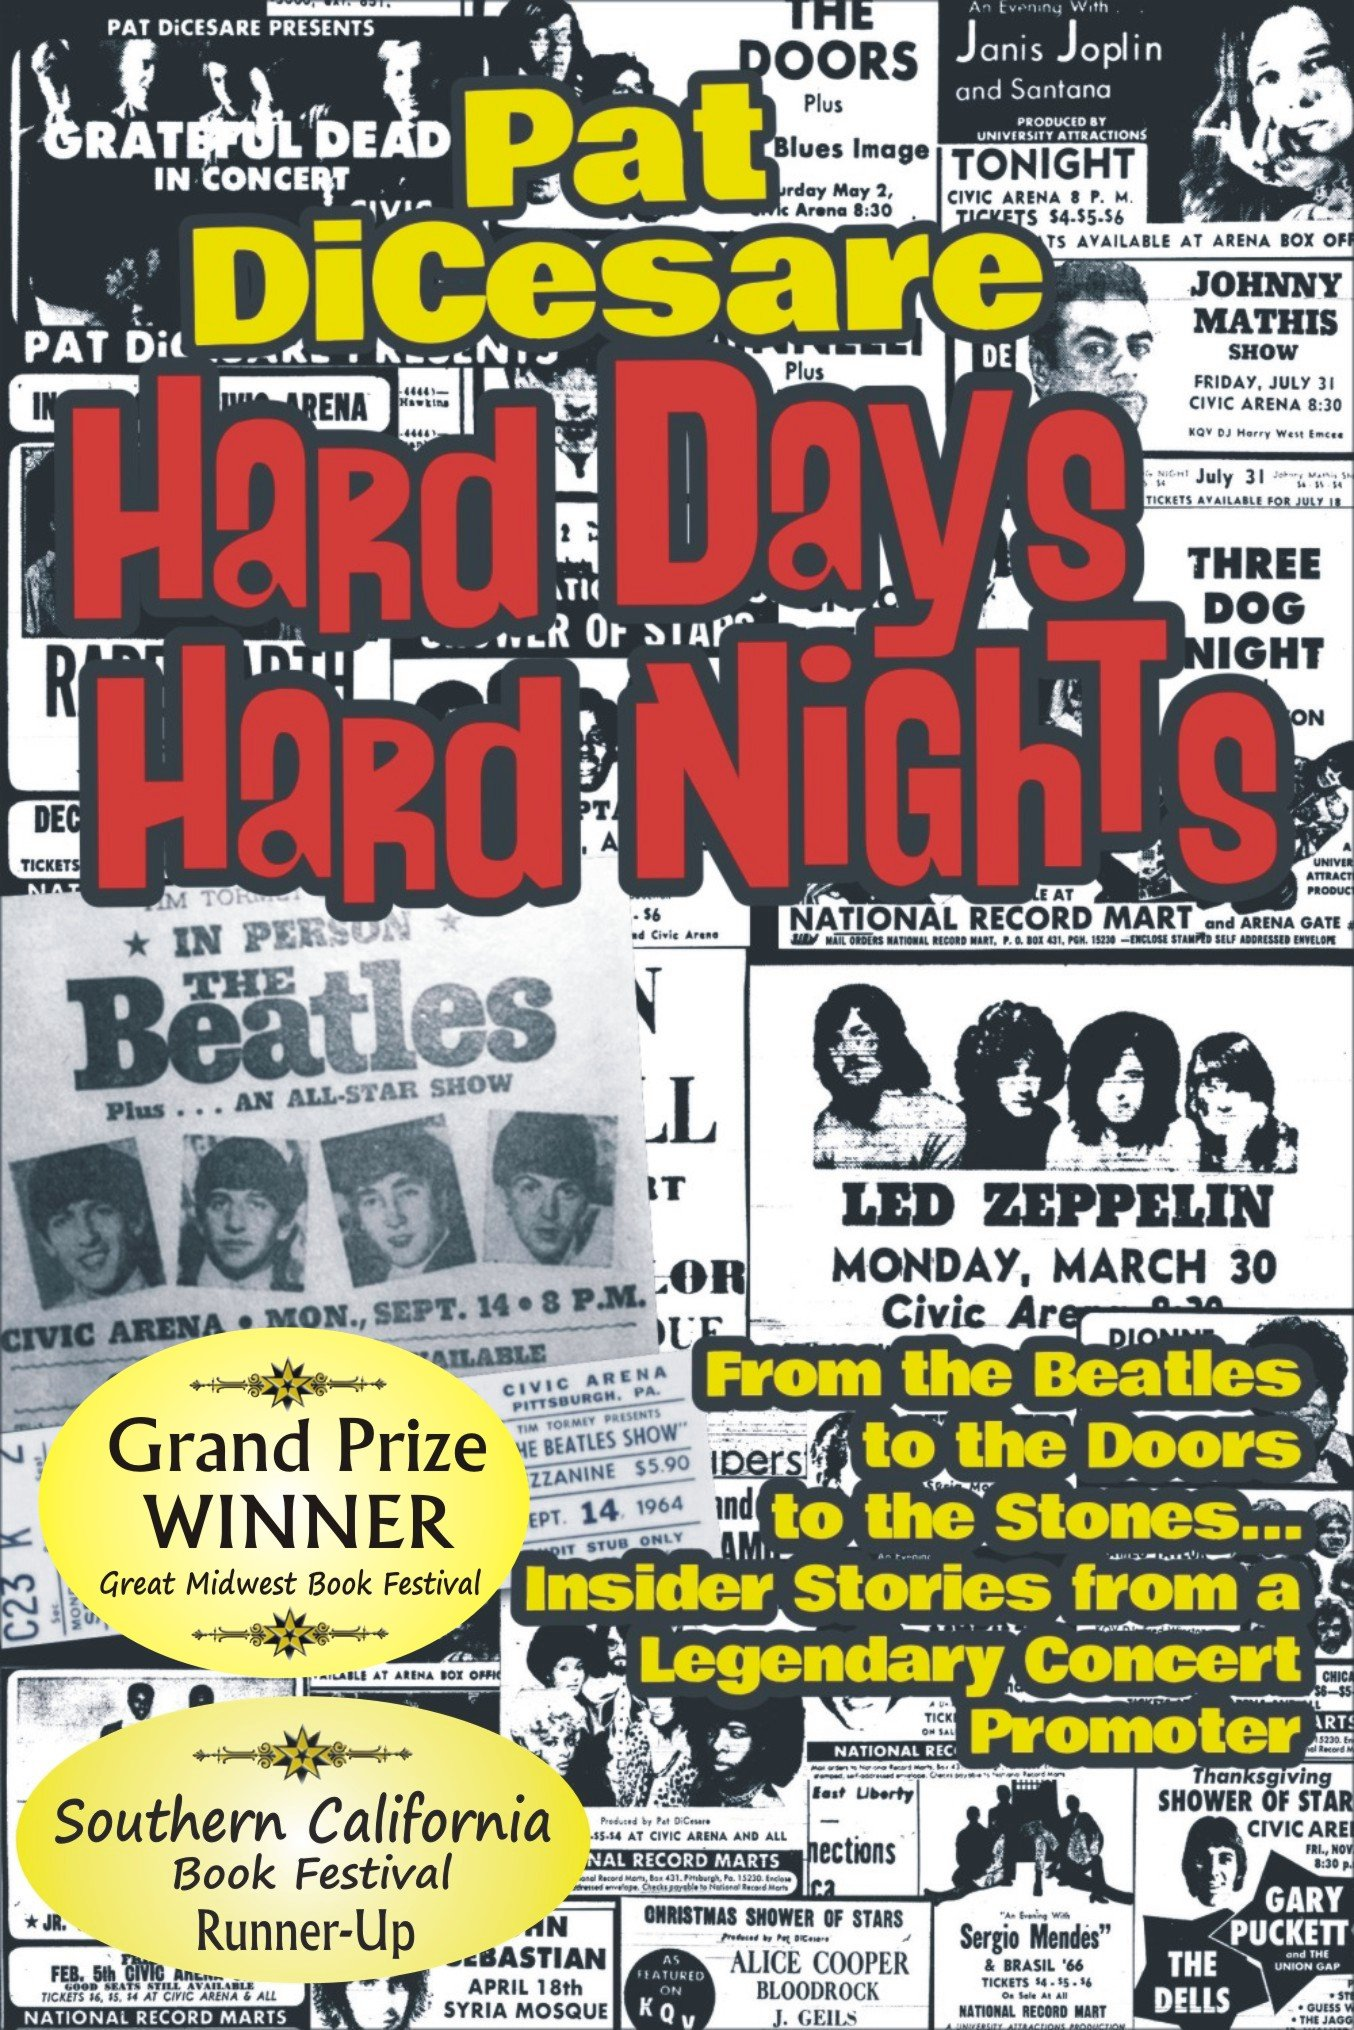 Download Hard Days Hard Nights: From the Beatles to the Doors to the Stones... Insider Stories From a Legendary Concert Promoter PDF